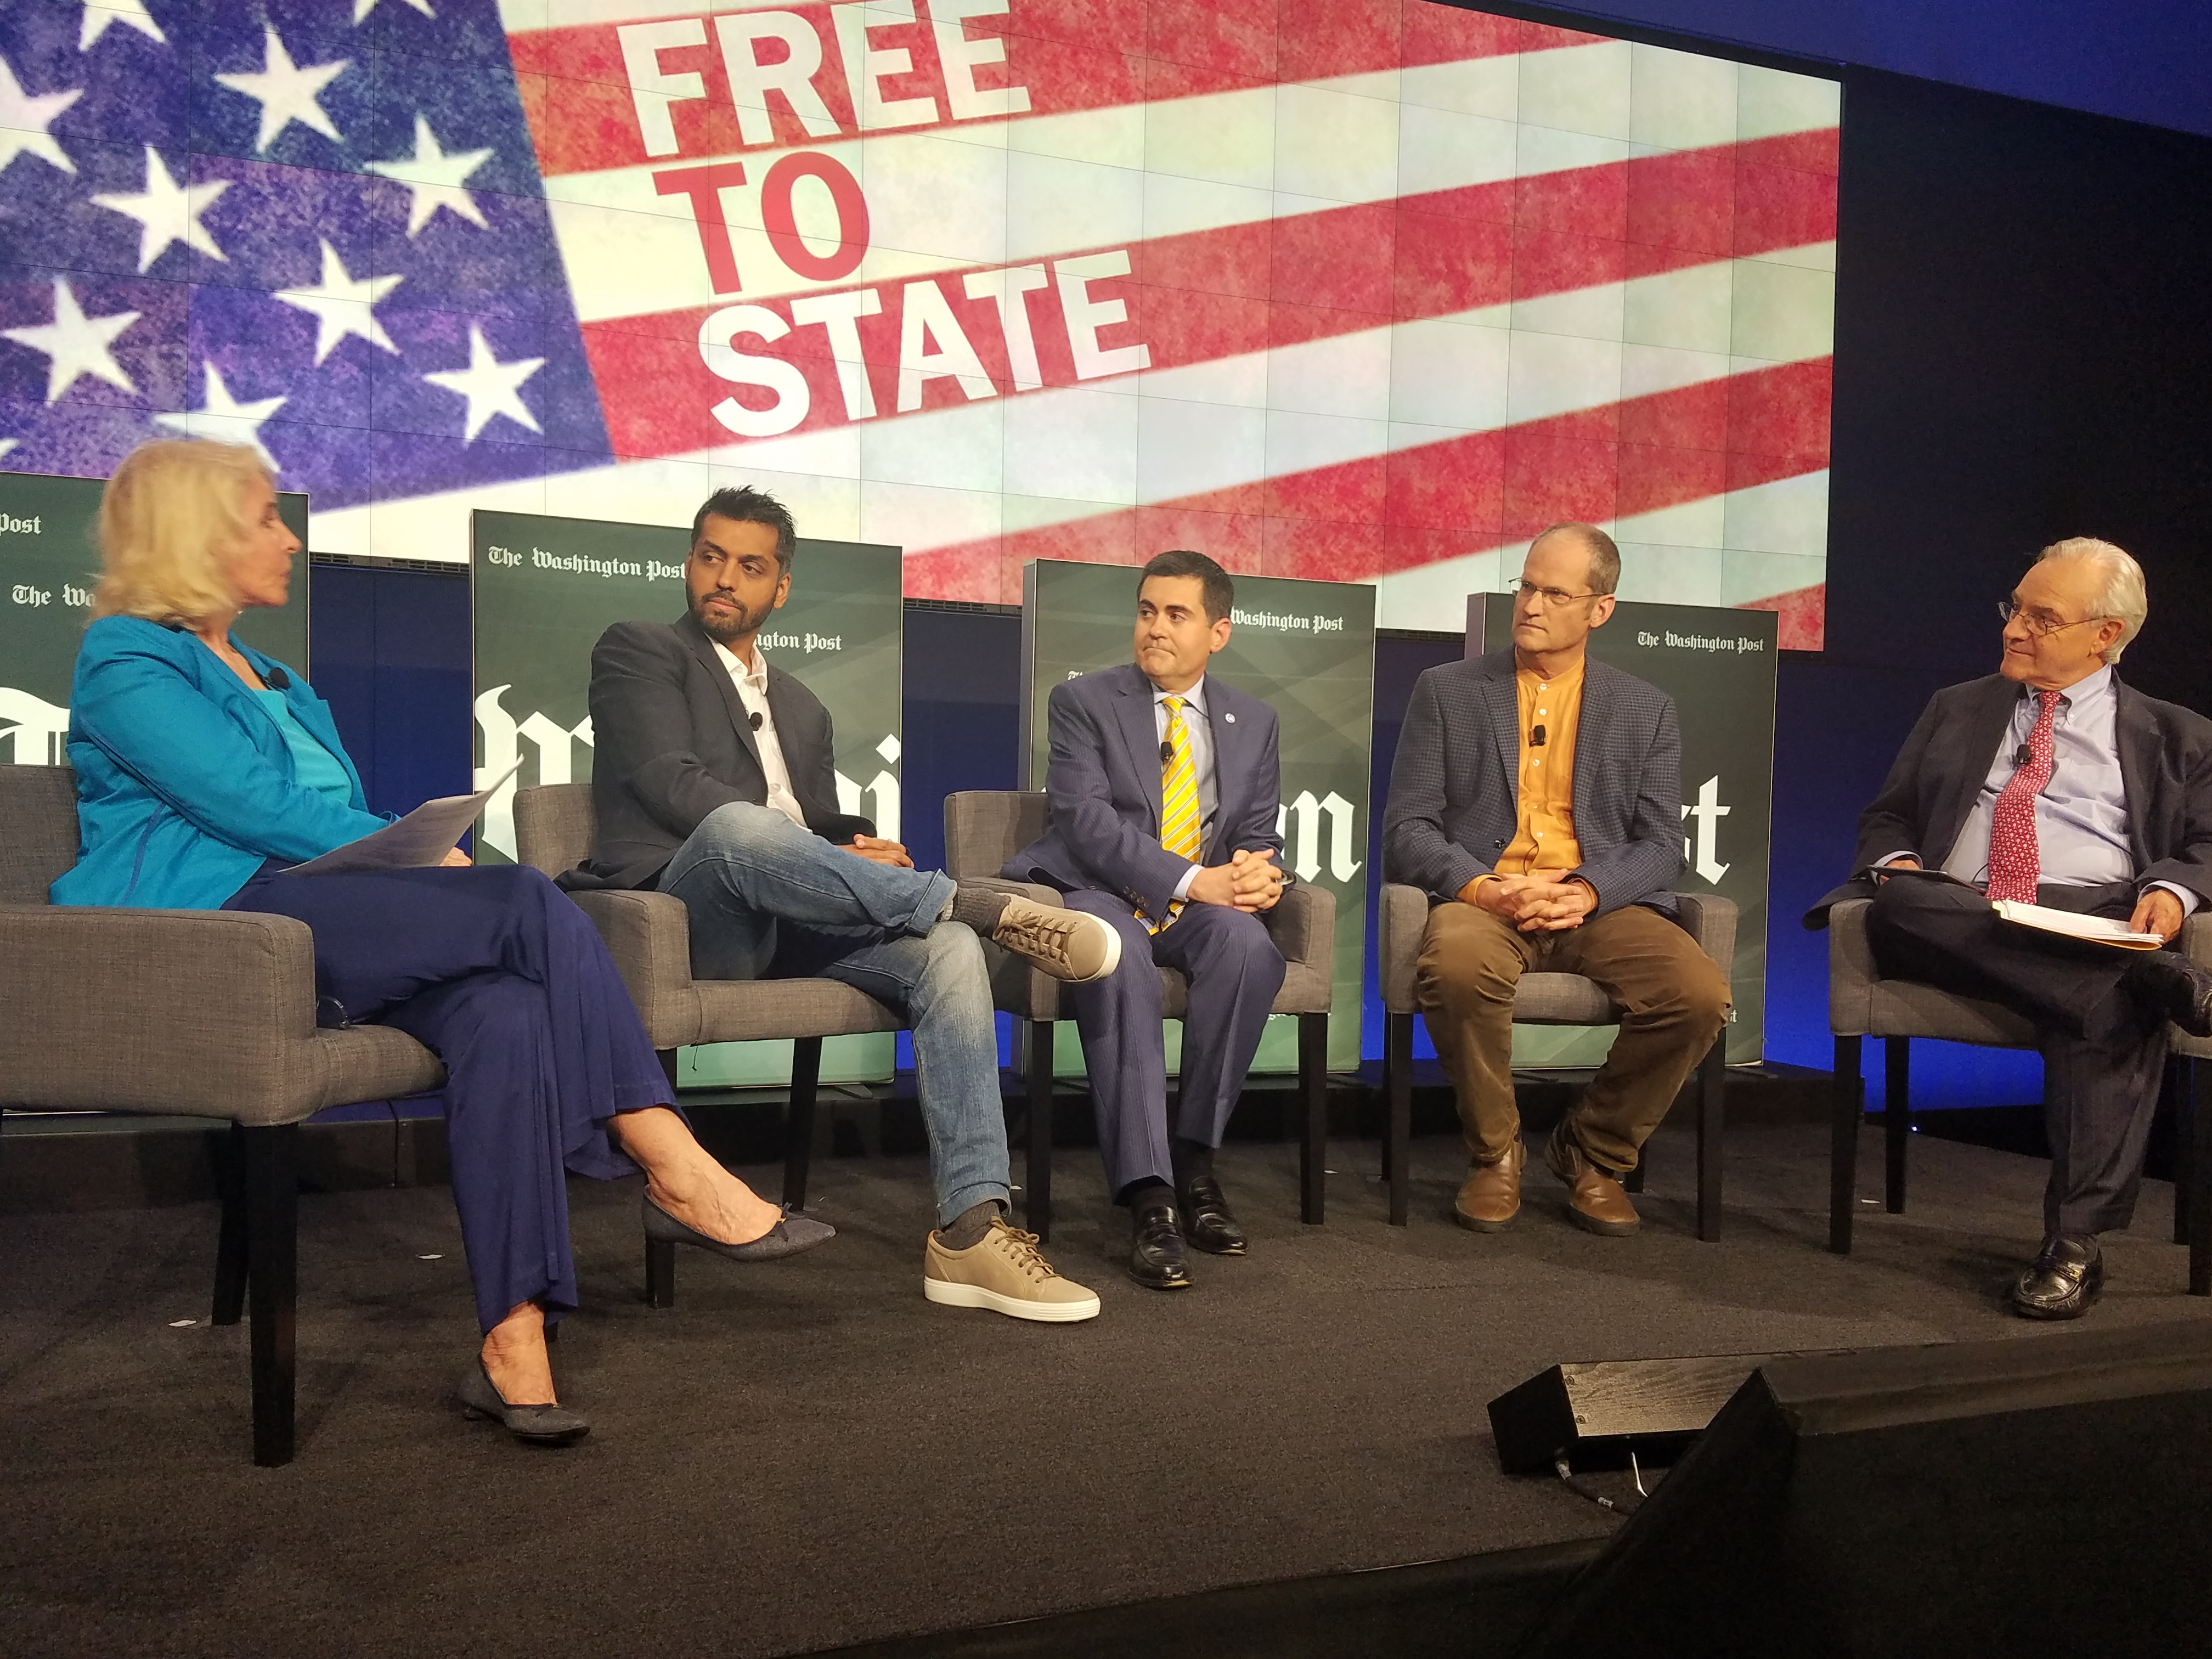 In a digital, diverse America, the First Amendment matters more than ever, forum shows